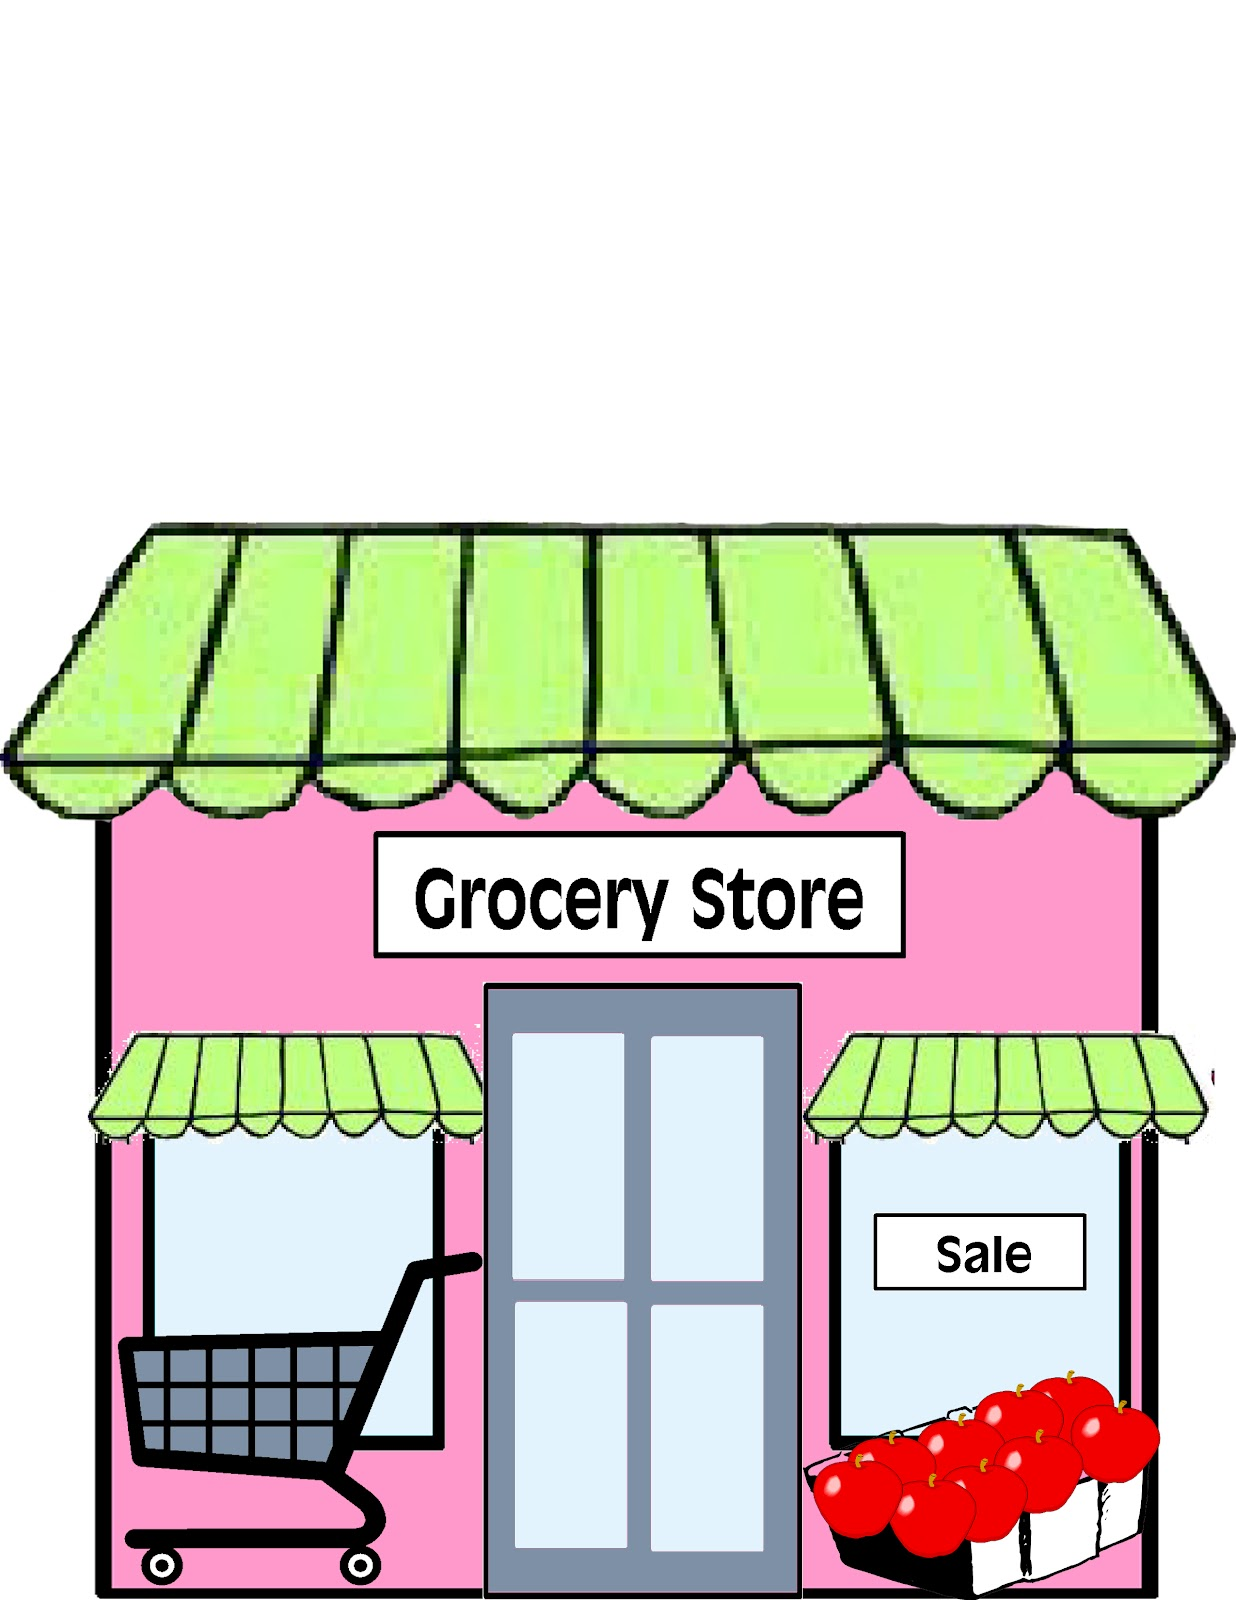 Mall clipart grocery. Restaurant food shop pencil